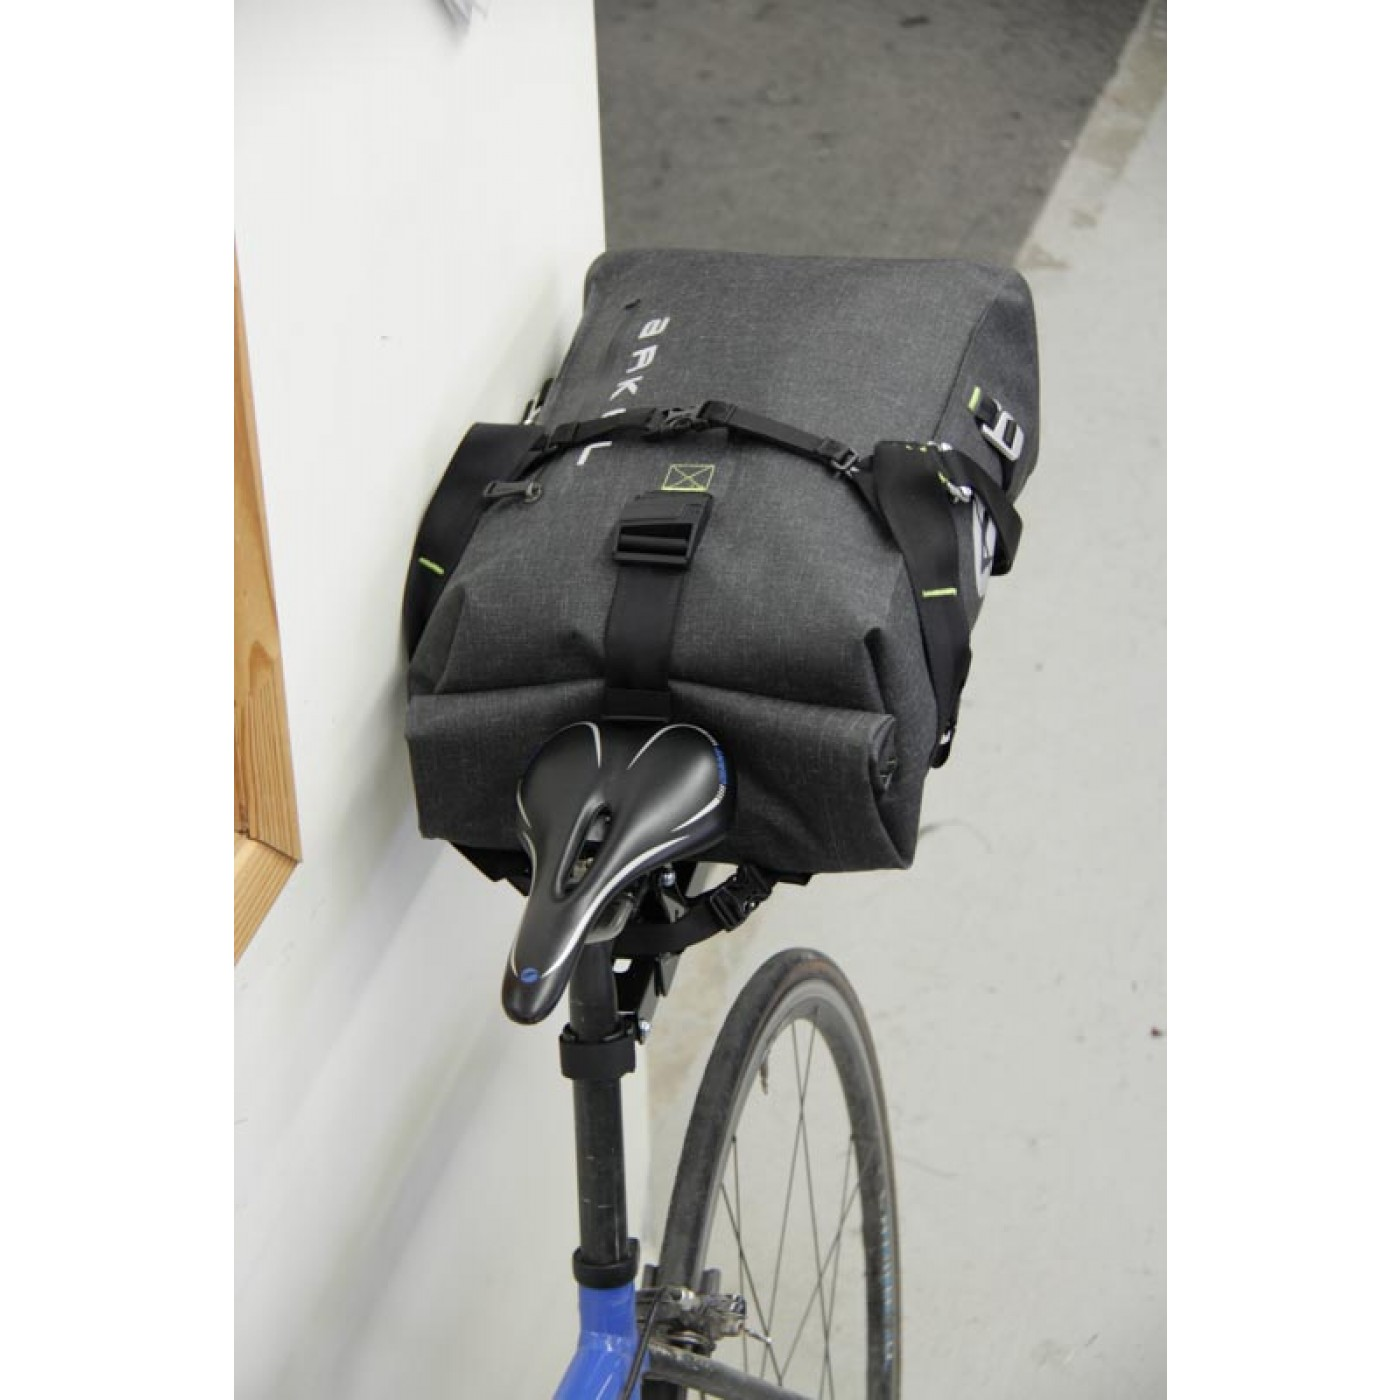 Drypack Cycling Backpack - Commuter Bike Bag | By Arkel